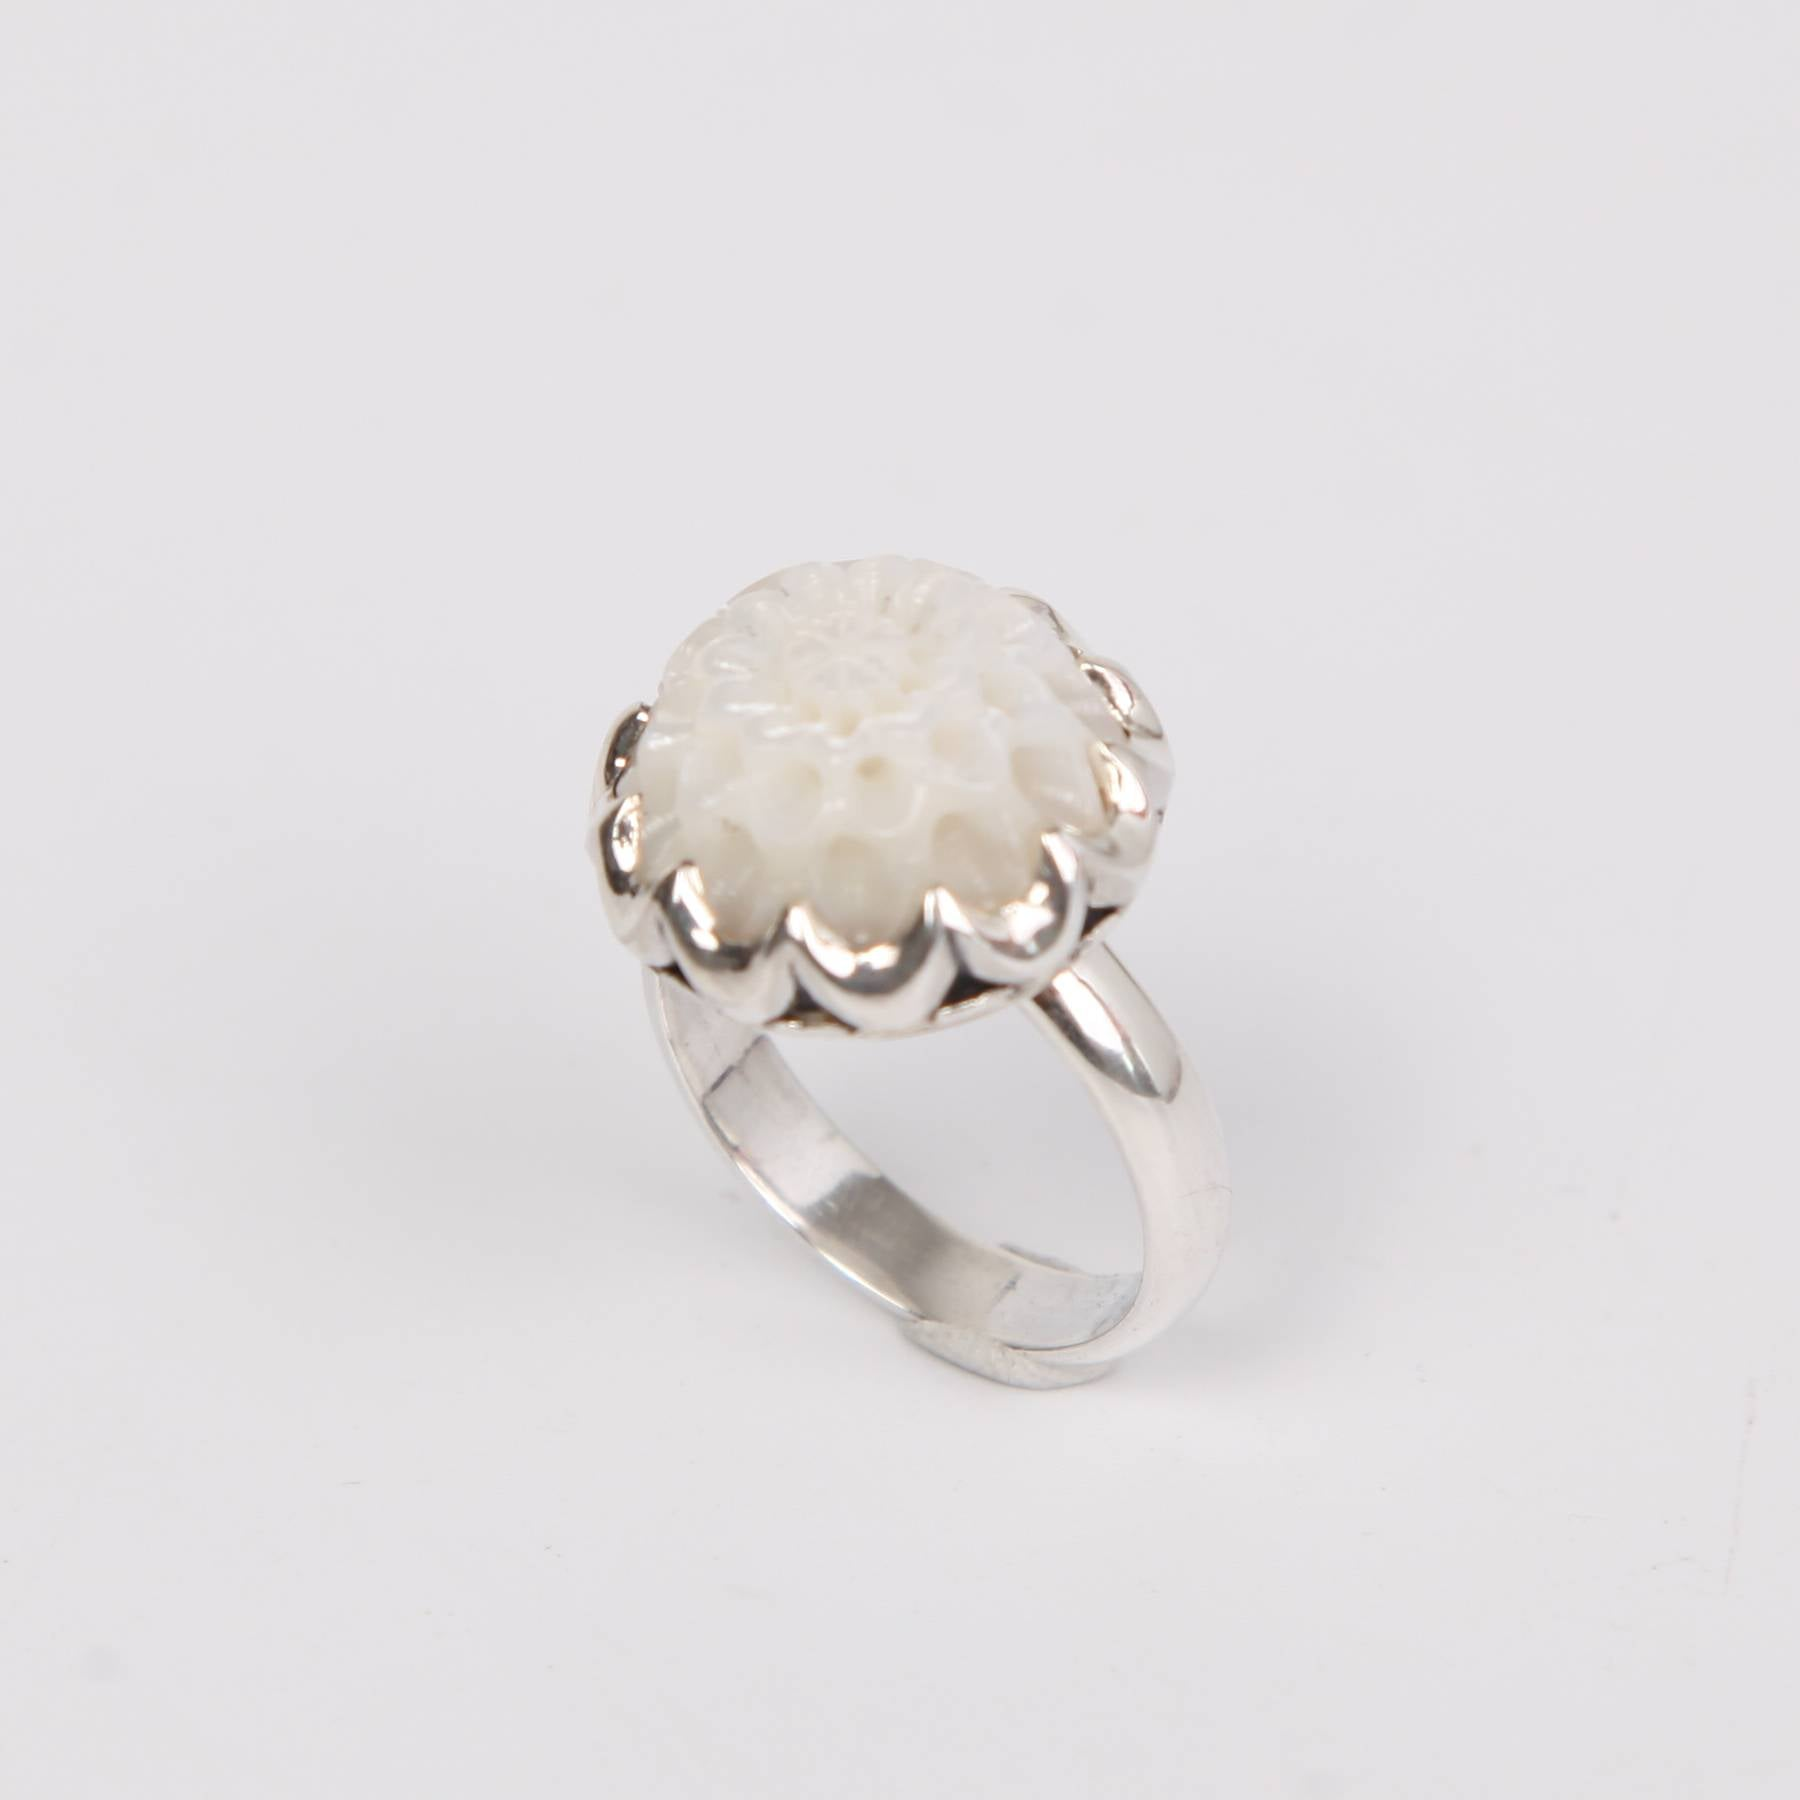 Floral Sterling Silver Ring with Mother of Pearl